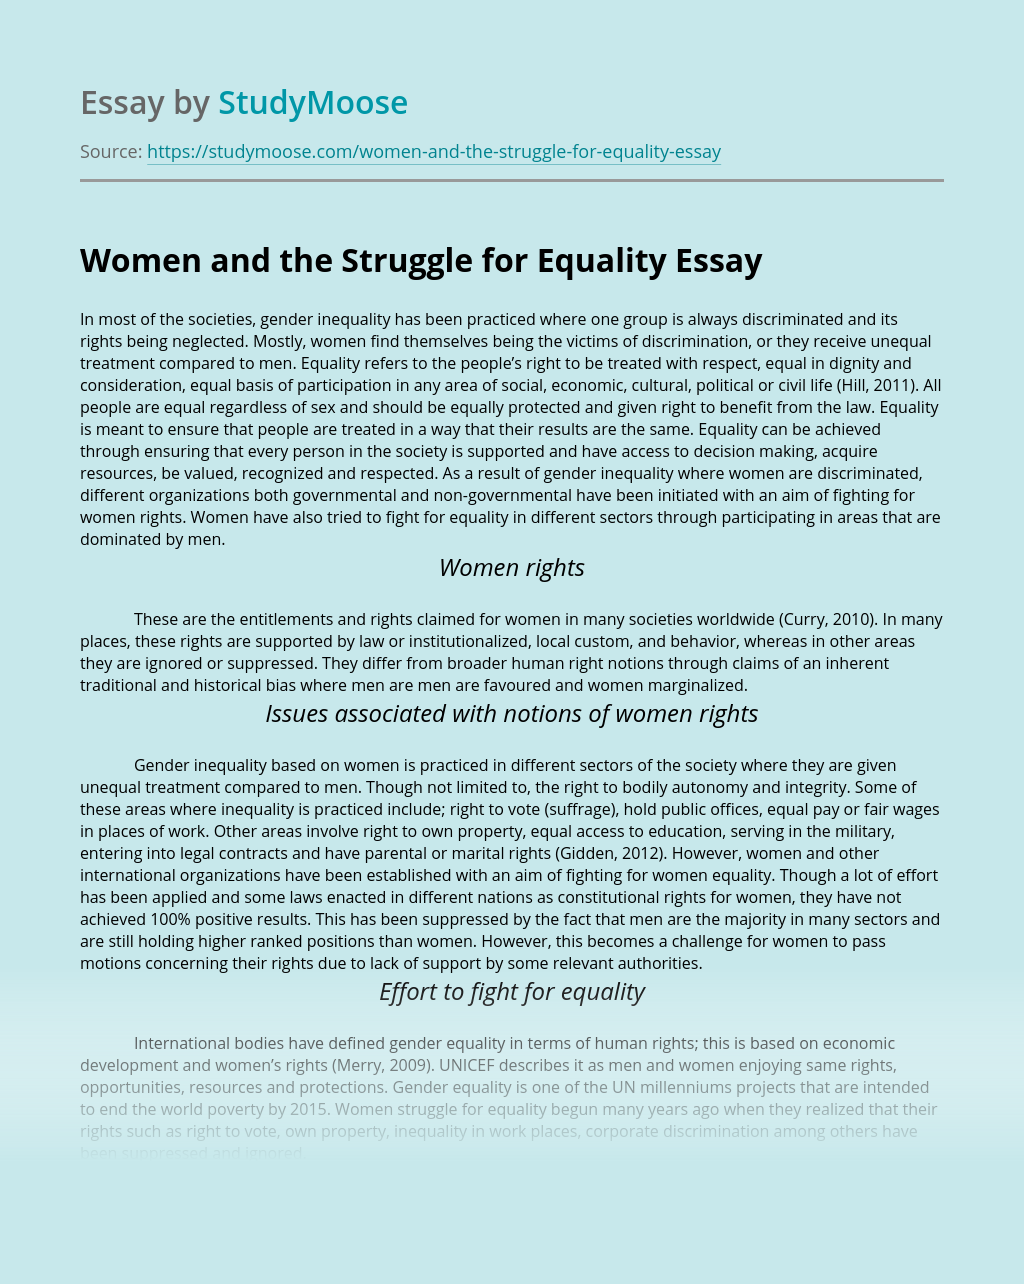 Women and the Struggle for Equality